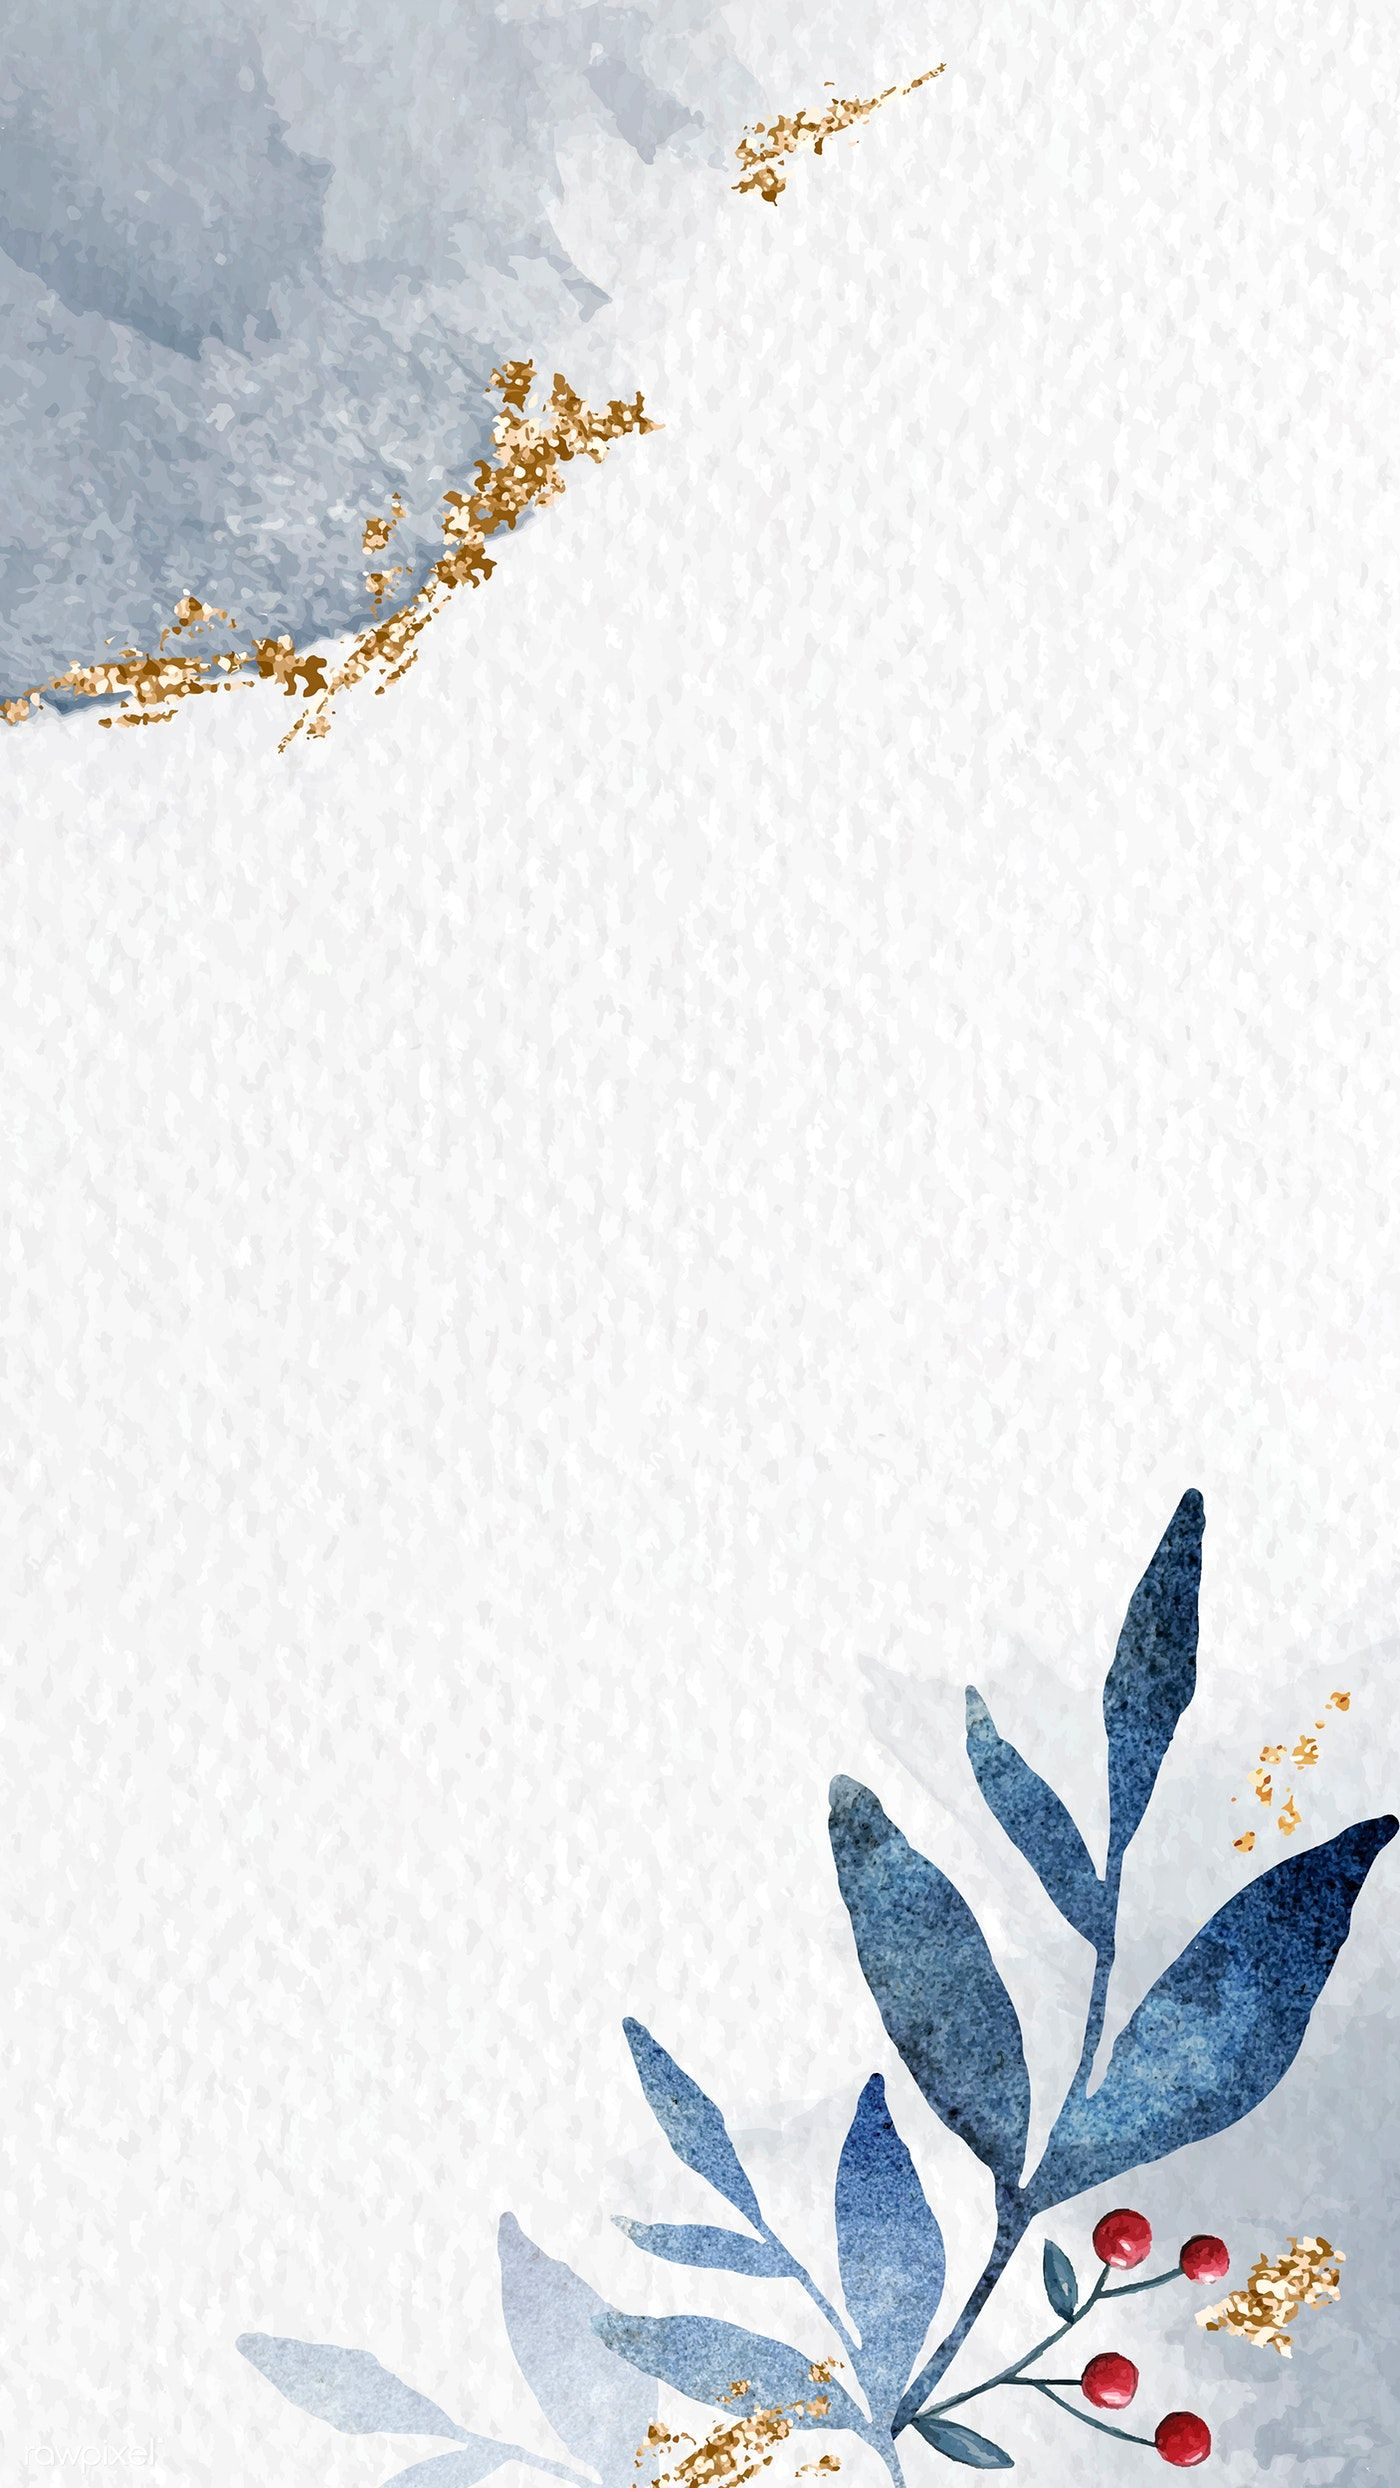 Download premium vector of Shimmering watercolor leafy frame mobile phone wallpaper vector by Adjima about christmas, winter, frame vector illustration, mobile watercolor, and iPhone wallpaper winter 1229126